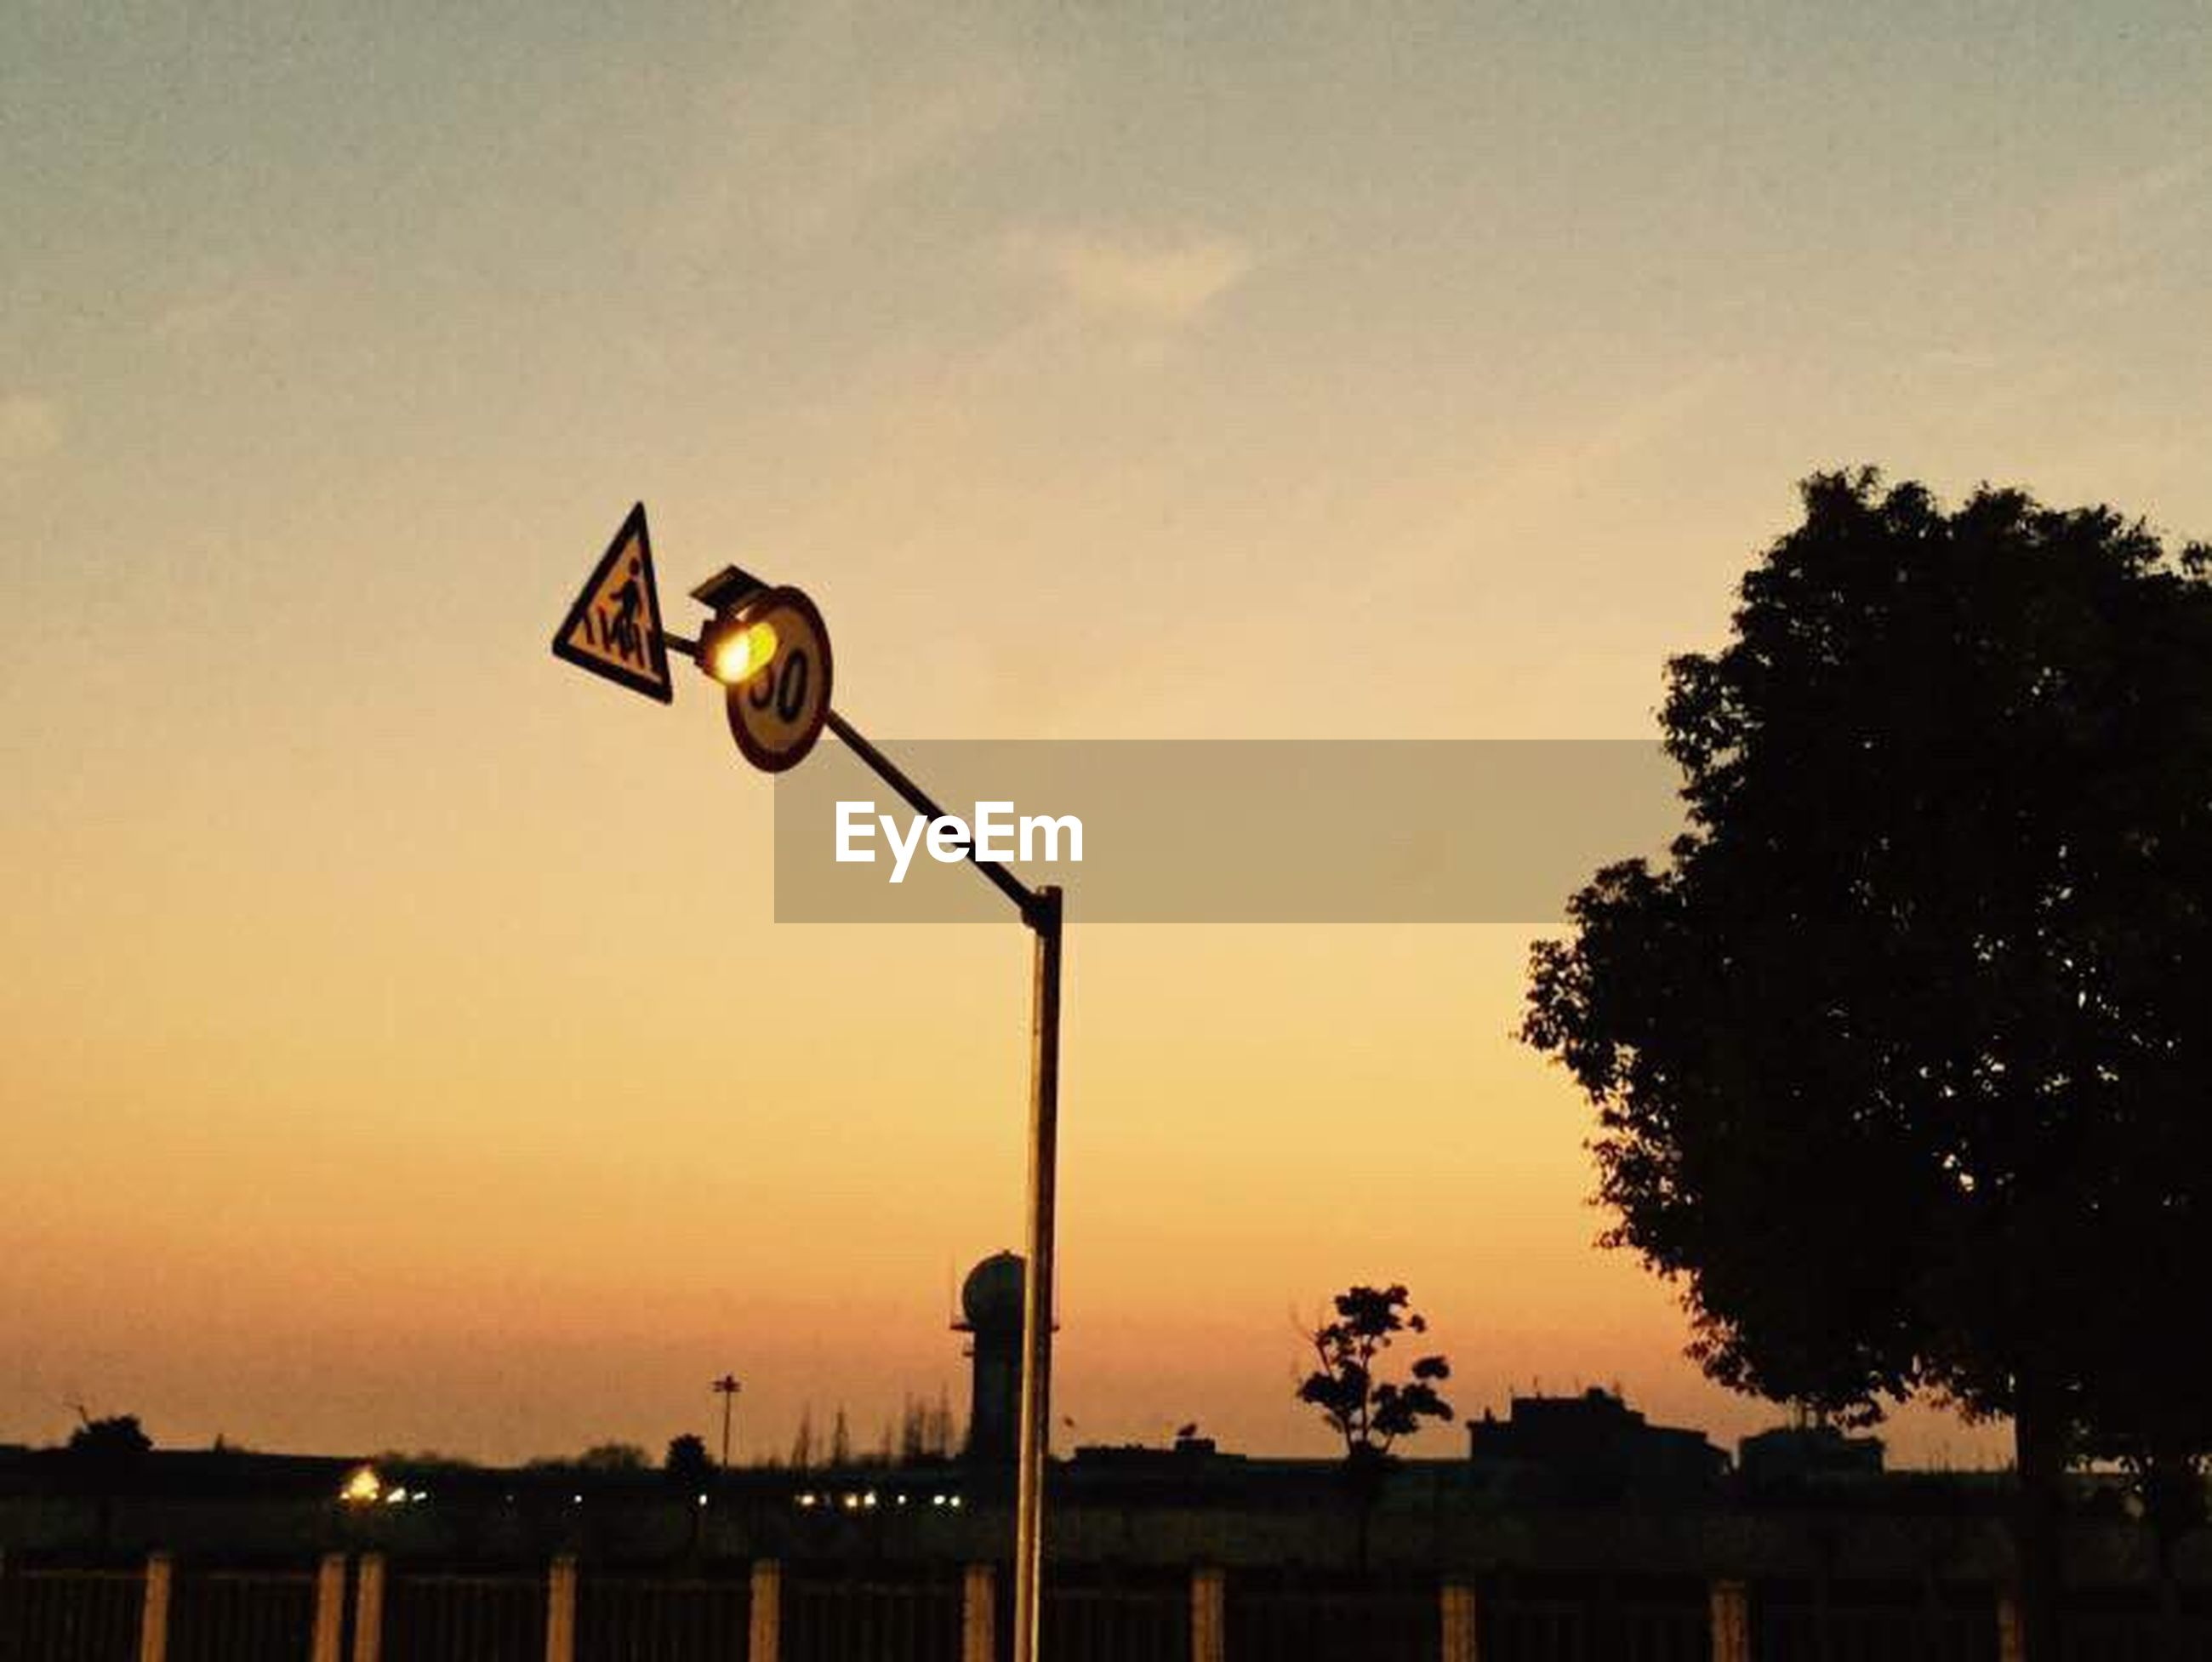 street light, sunset, lighting equipment, sky, silhouette, low angle view, tree, illuminated, orange color, dusk, lamp post, electric light, nature, outdoors, electricity, scenics, no people, tranquility, built structure, beauty in nature